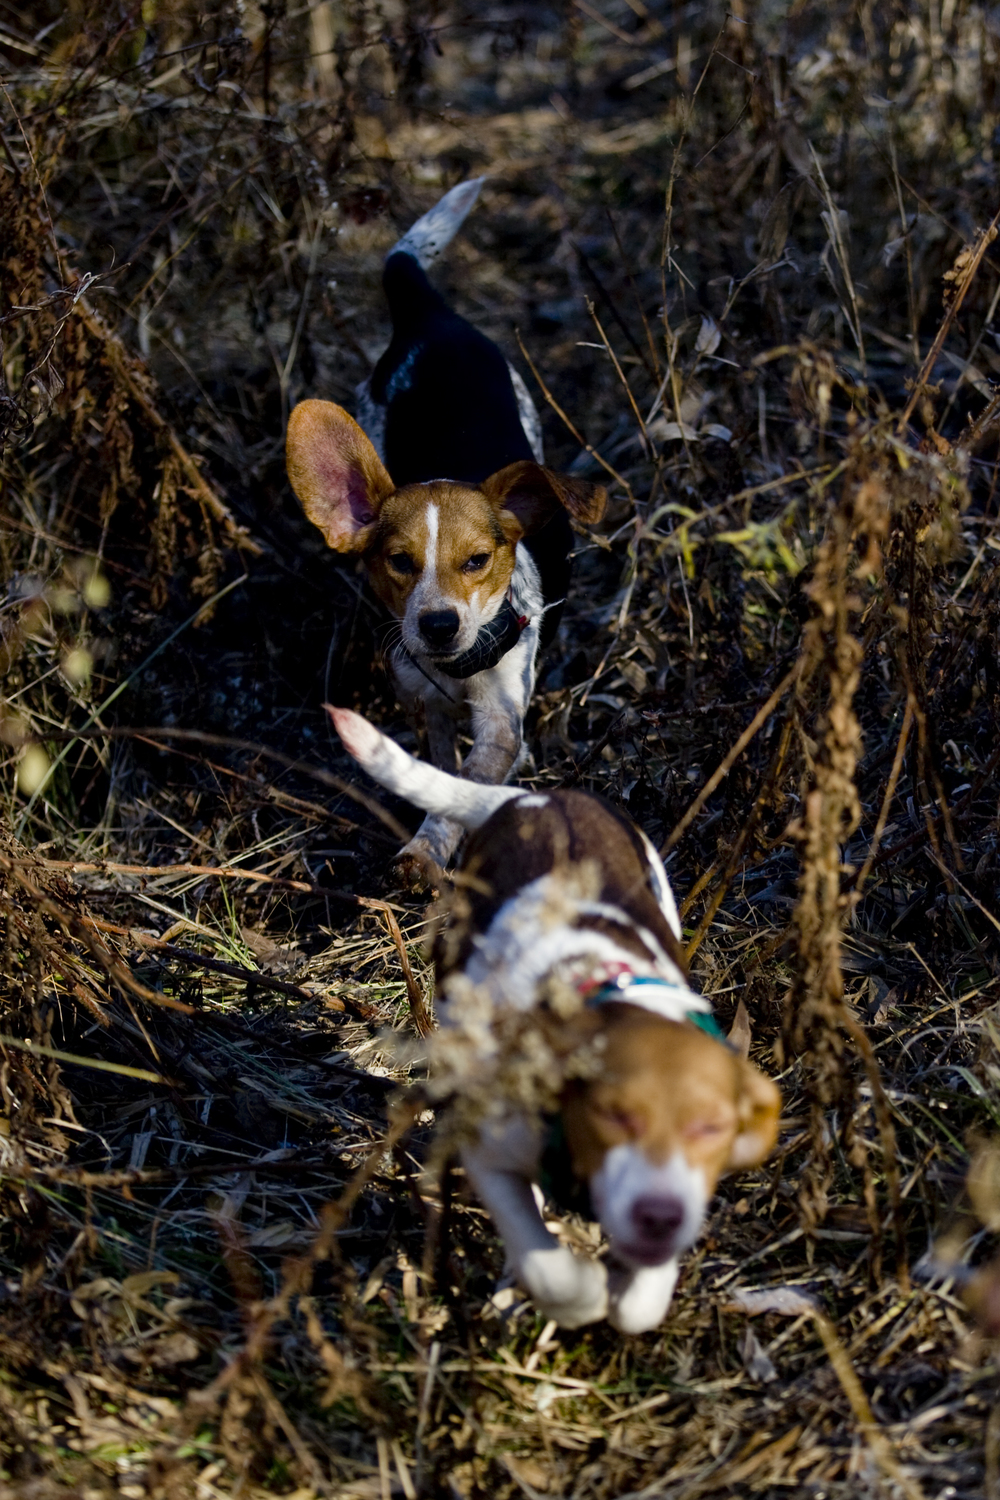 Two of the rabbit hunting beagles.